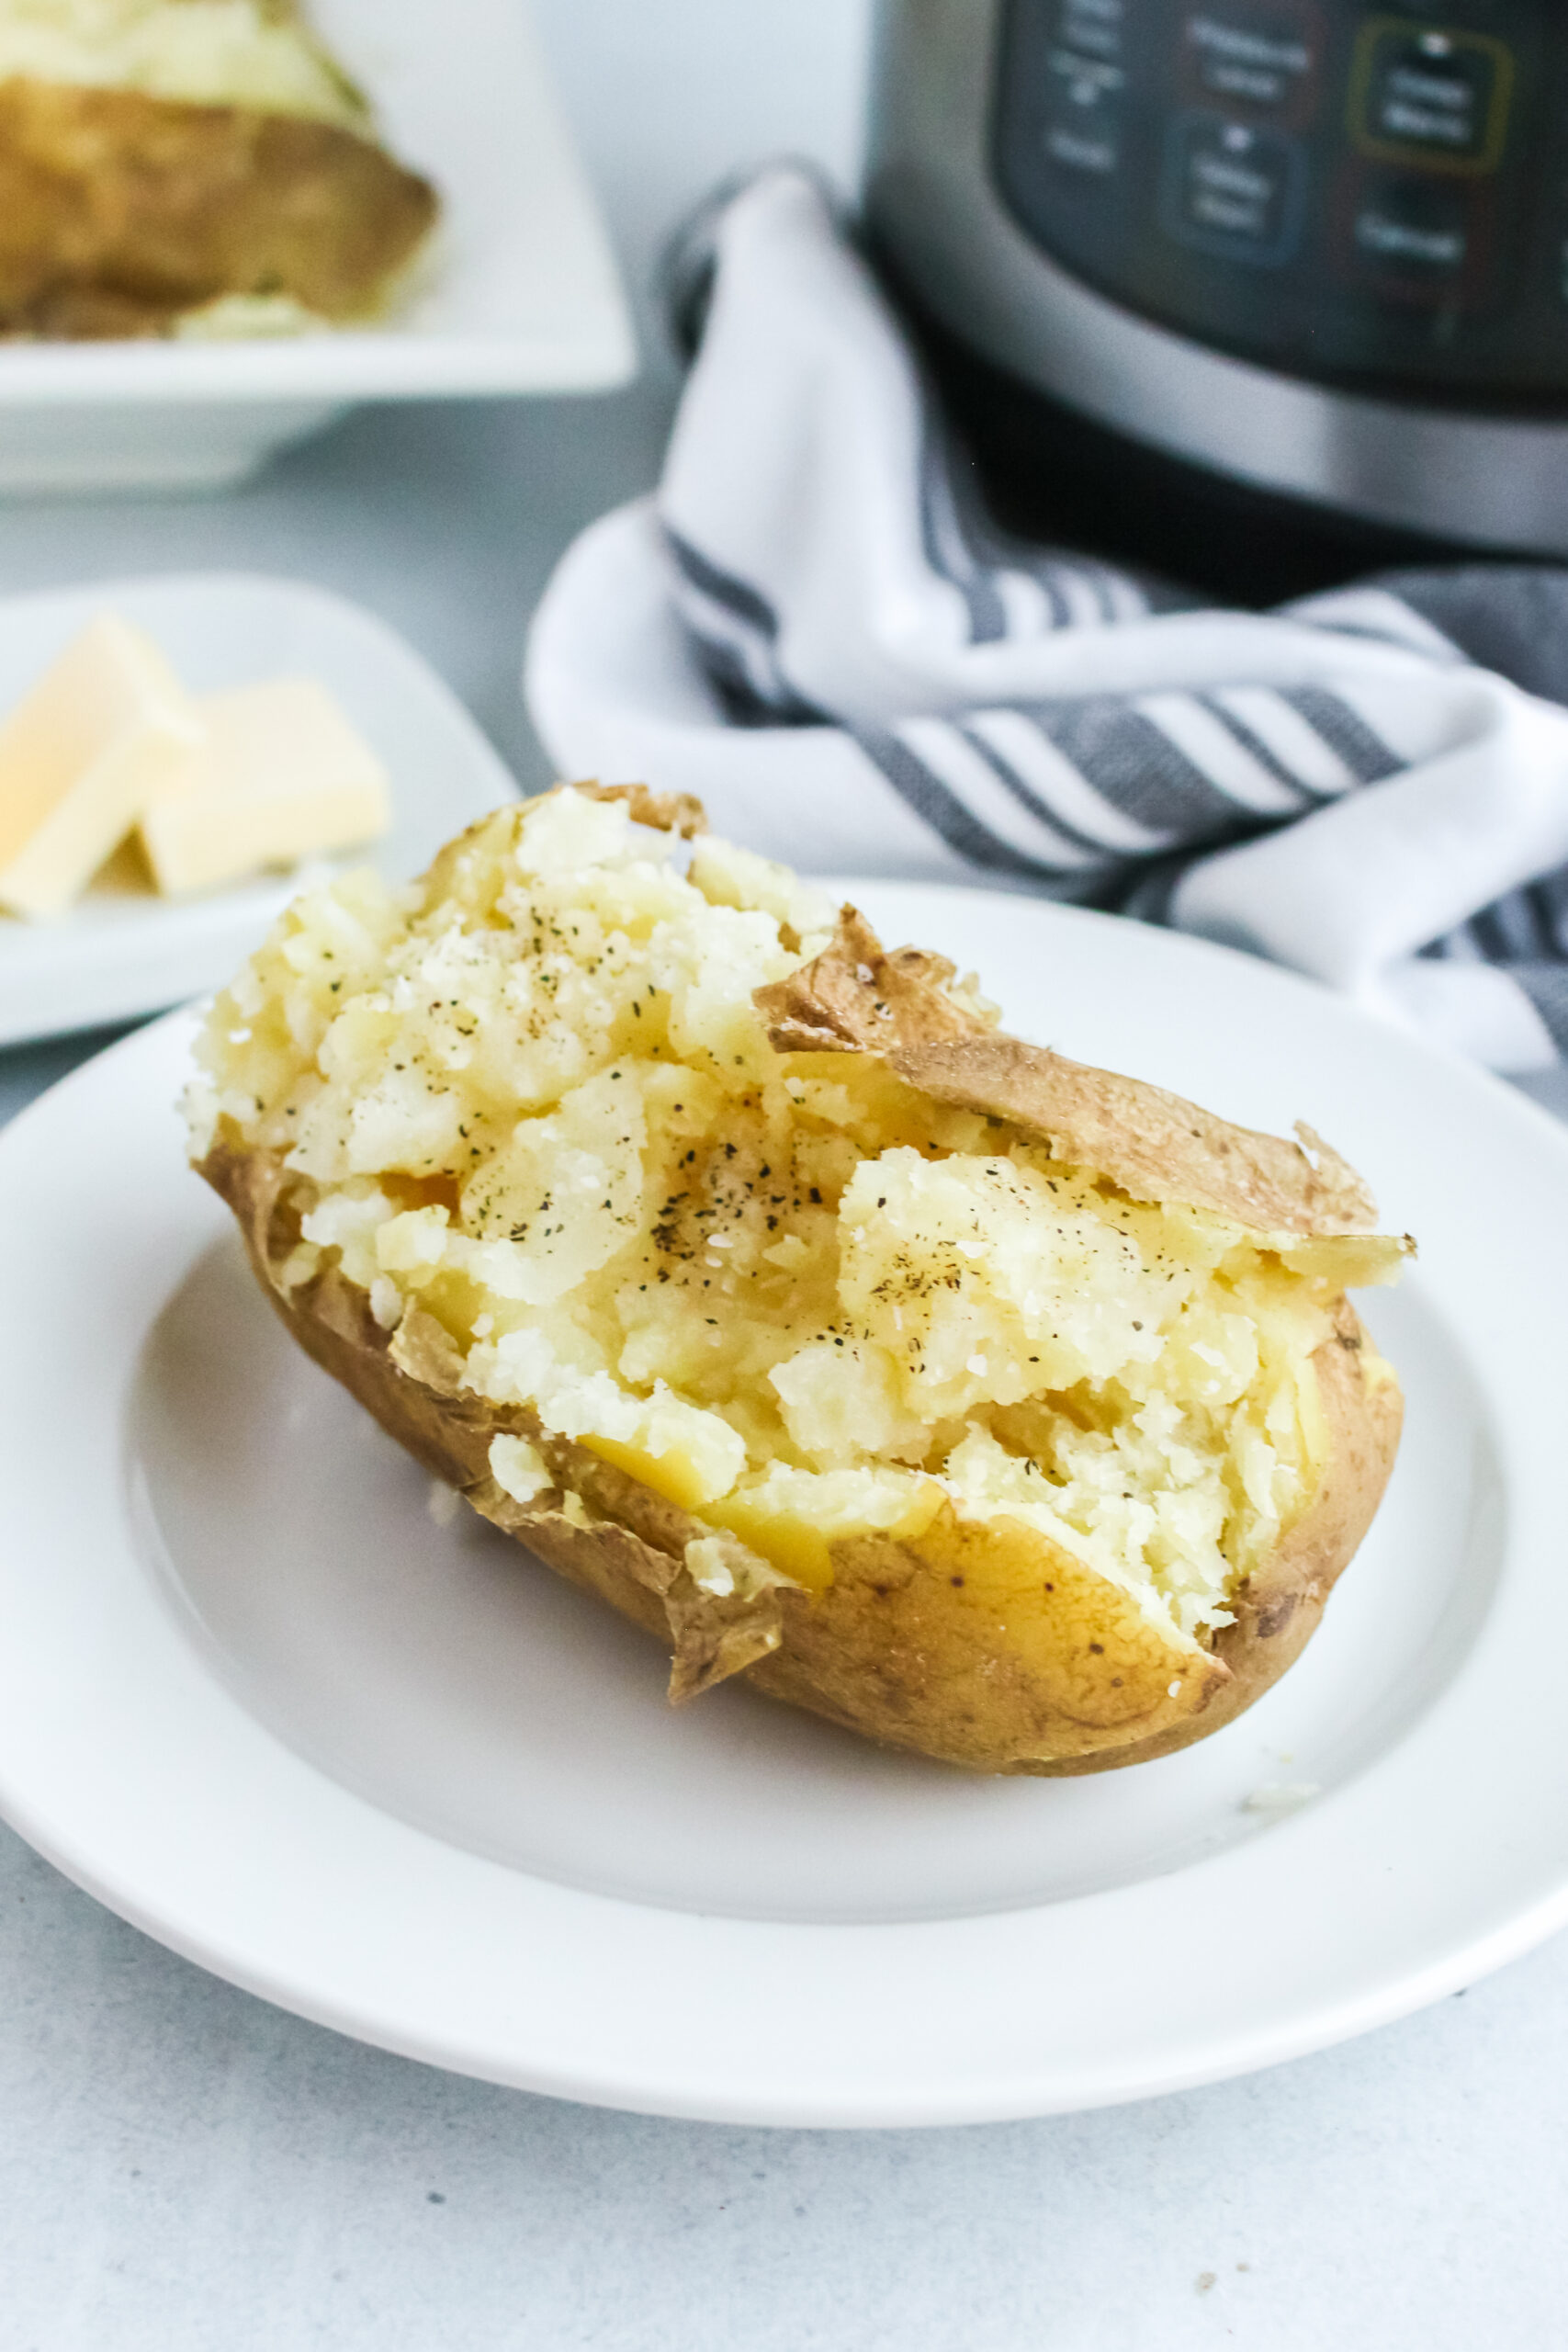 a single baked potato on a plate with instant pot in background